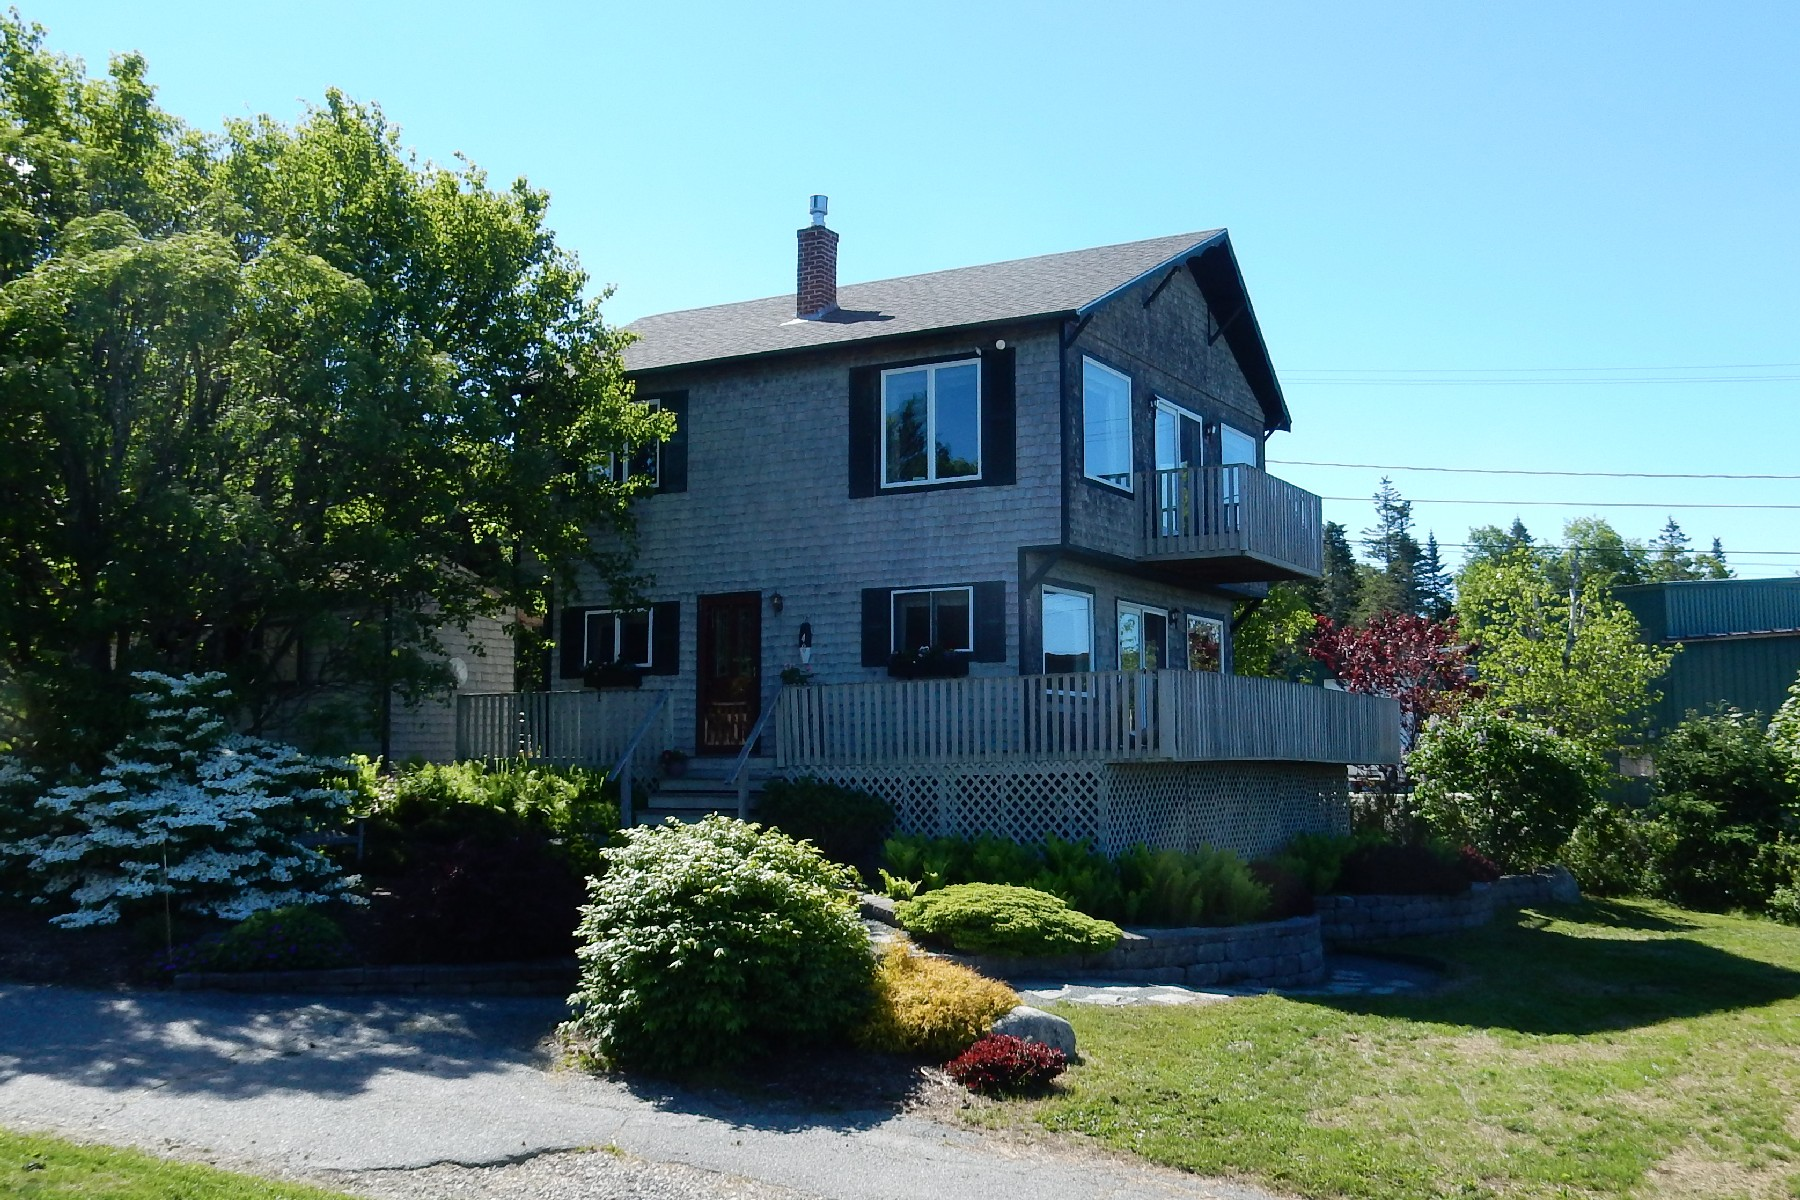 Single Family Home for Sale at Granville Road 48 Granville Road Tremont, Maine, 04653 United States